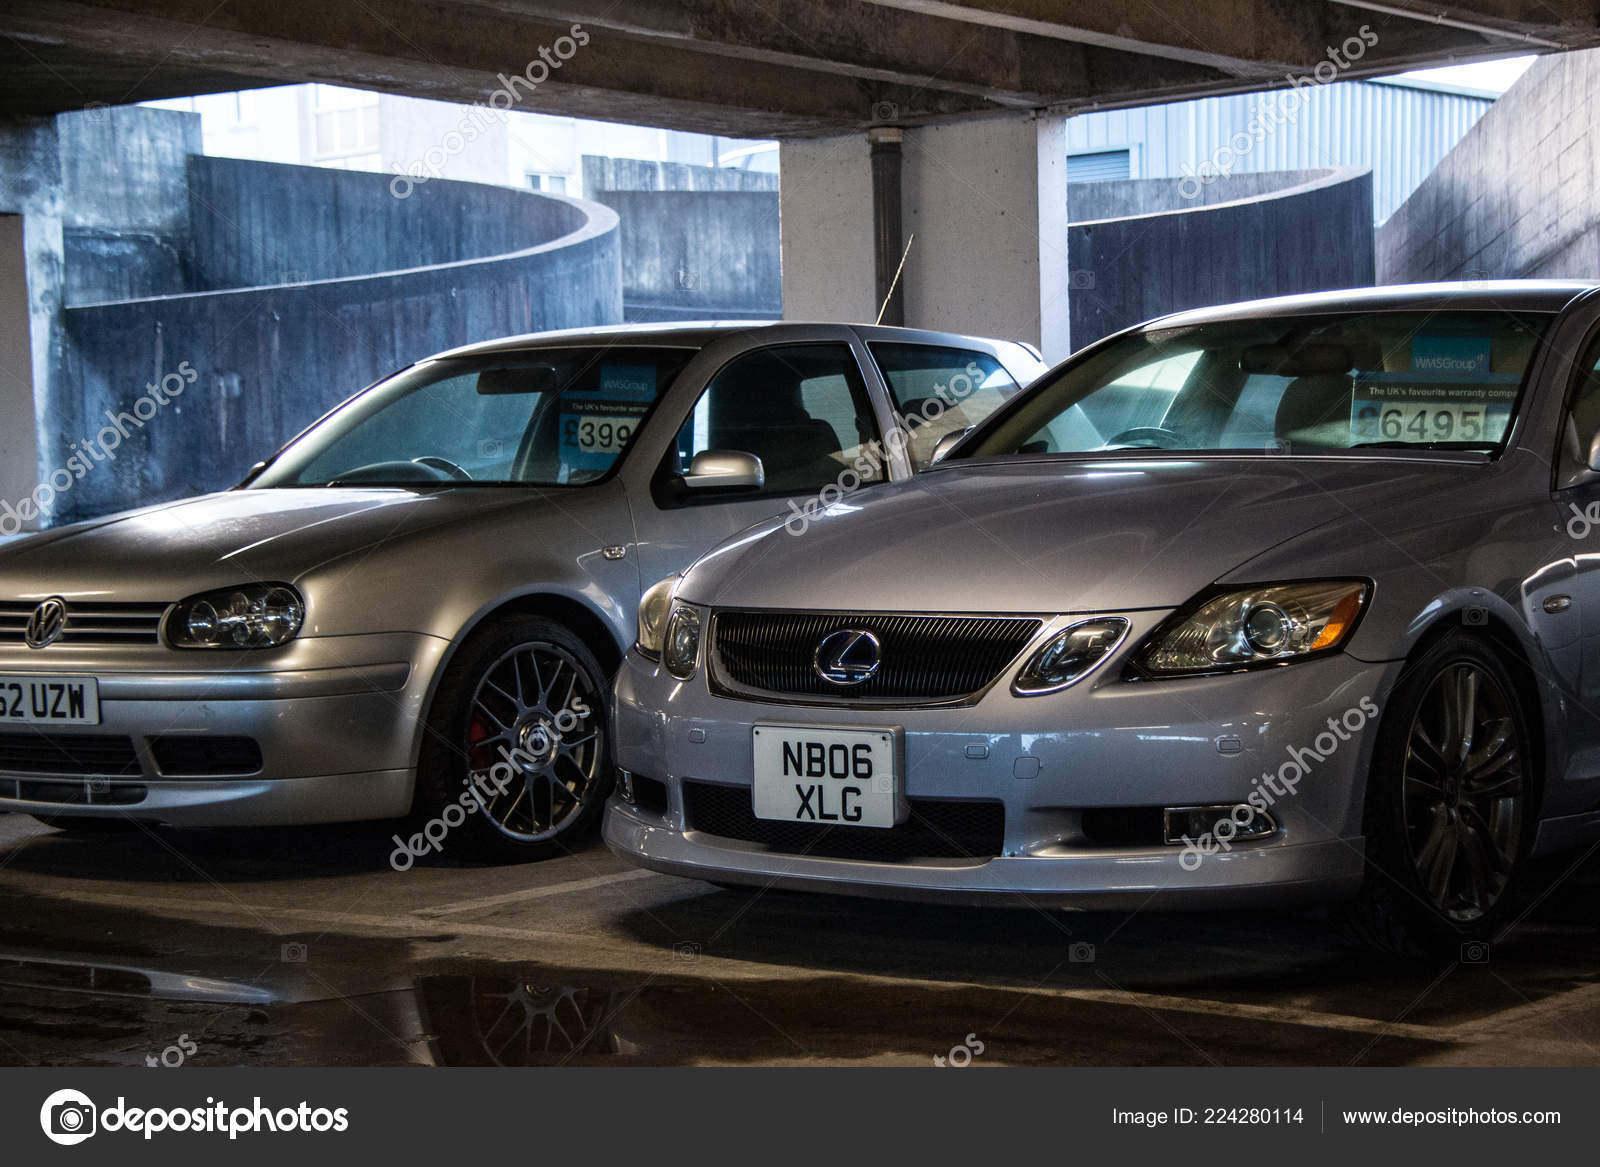 Couple Silver Cars Sale Parked Dark Gloomy Car Park Stock Editorial Photo C Tobyparsons 224280114